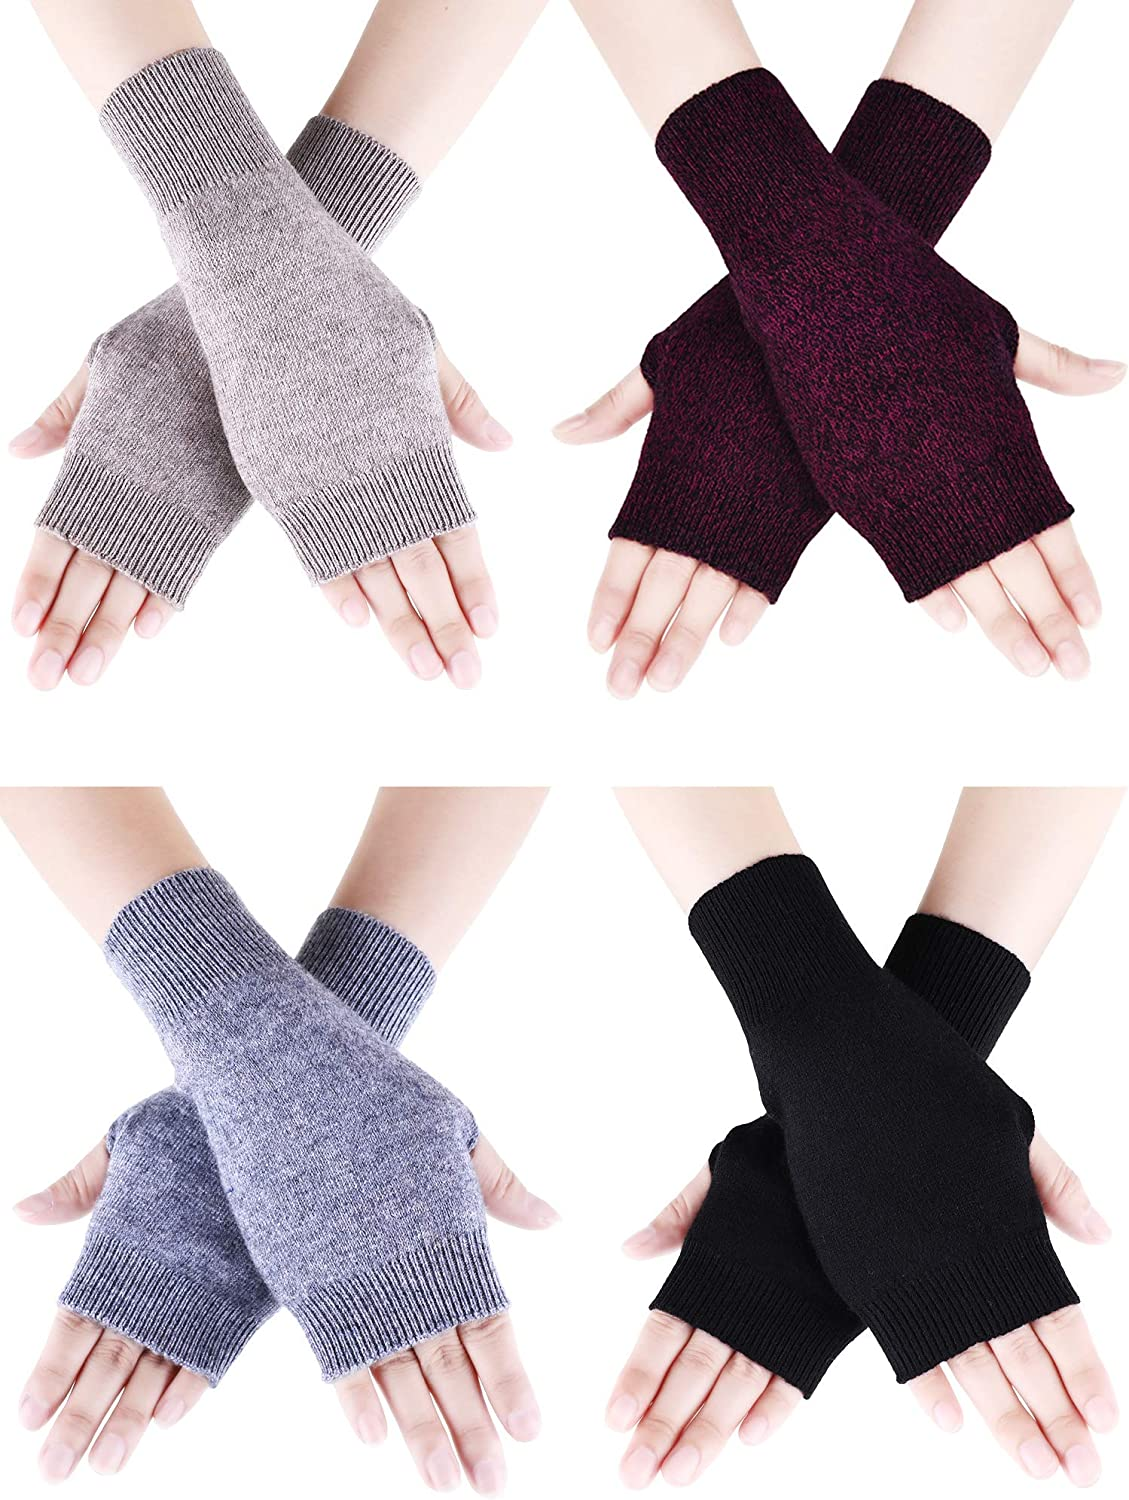 Tatuo 4 Pairs Cashmere Feel Fingerless Gloves with Thumb Hole Warm Gloves for Women and Men (Black, Dark Gray, Camel, Purple)